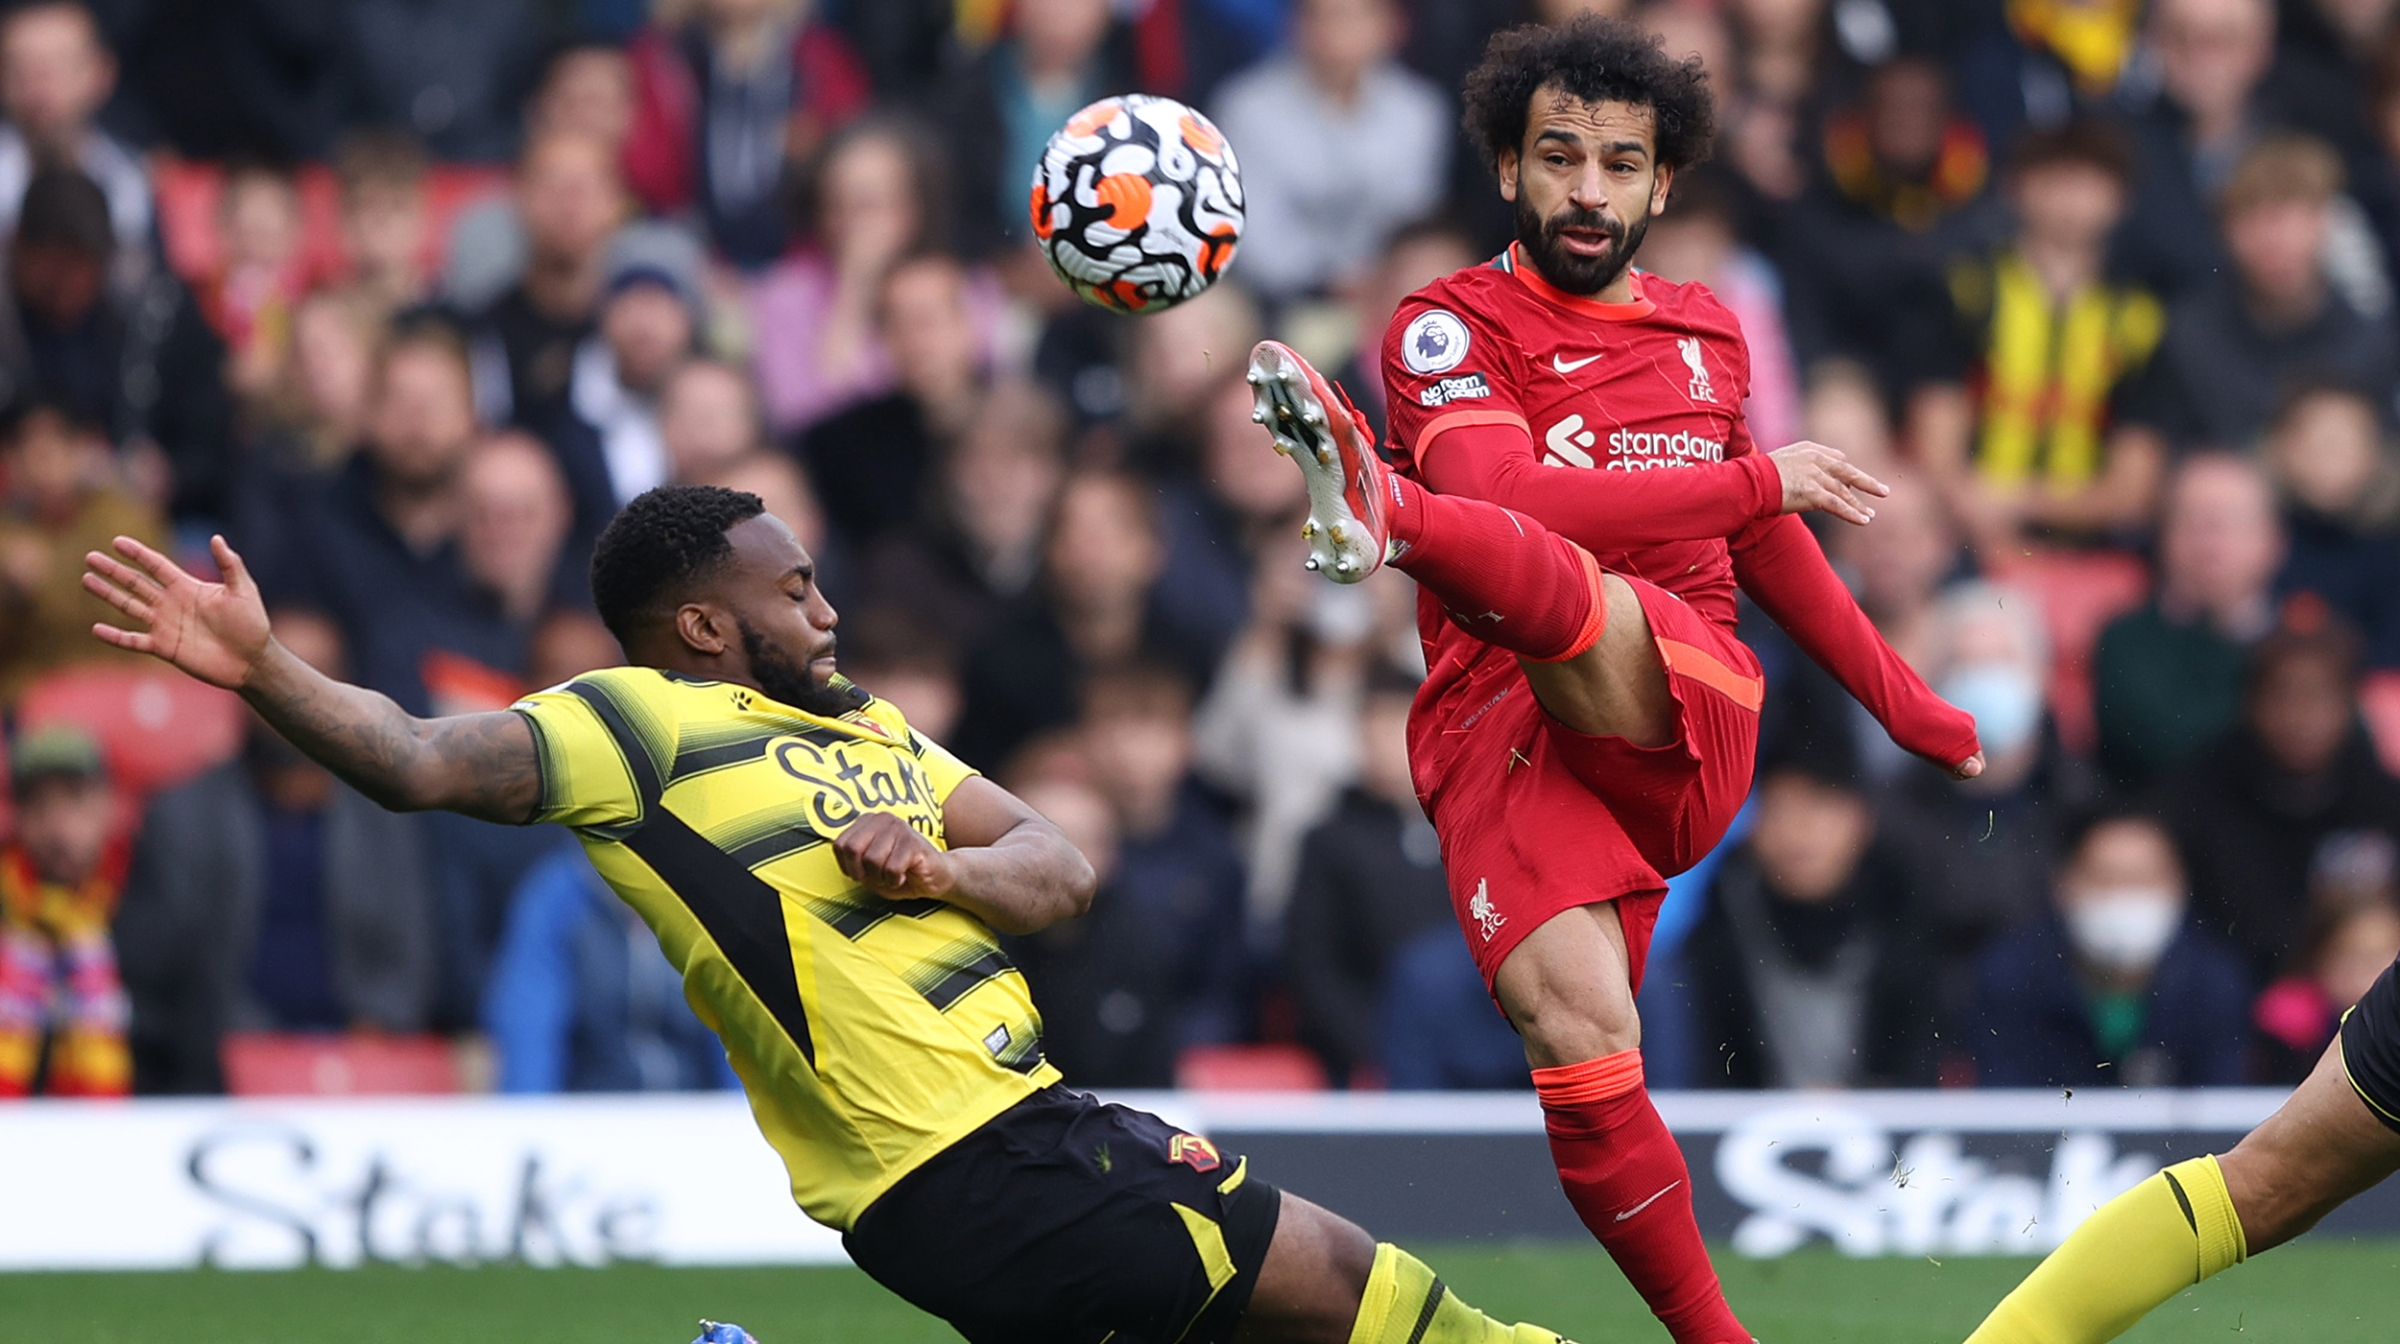 Mohamed Salah of Liverpool takes a shot as Danny Rose of Watford FC attempts to block during the Premier League match between Watford and Liverpool at Vicarage Road on October 16, 2021 in Watford, England.